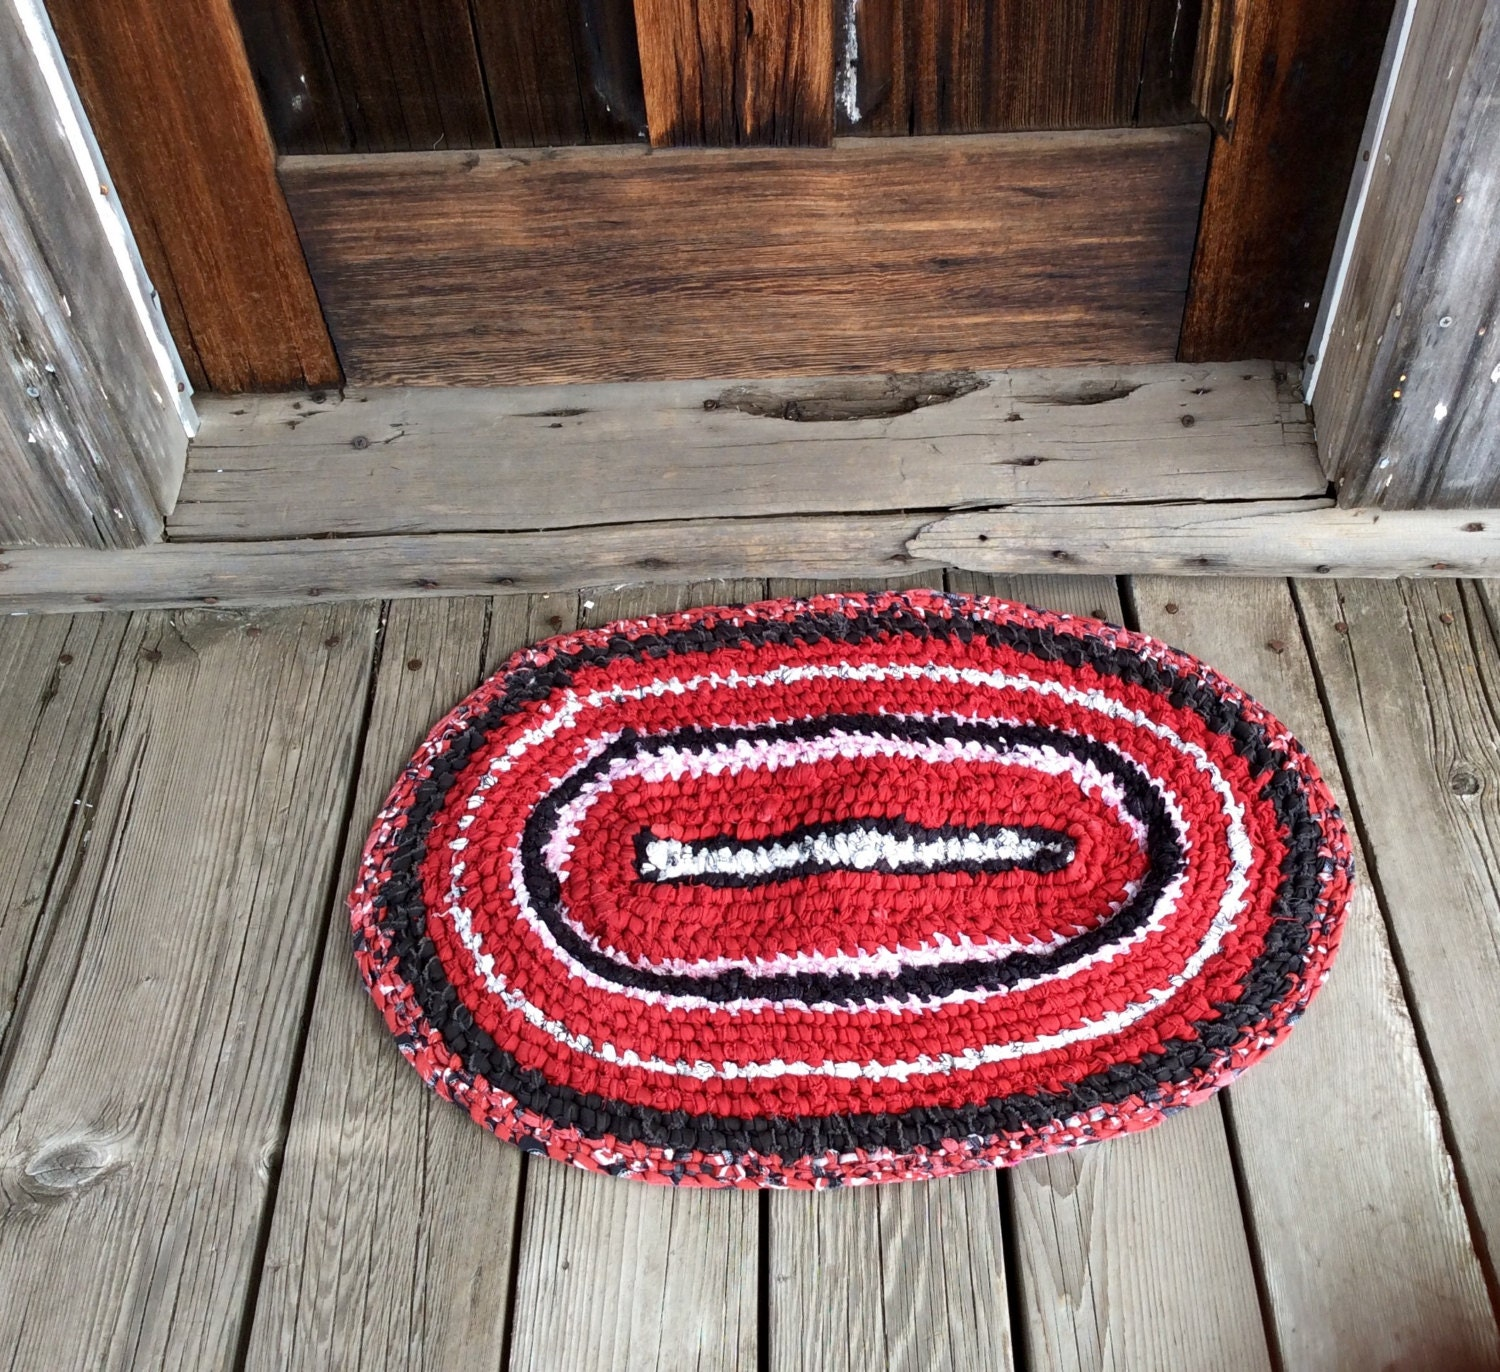 SALE Rag Rug Toothbrush Amish Knotted. Deep Red Black White